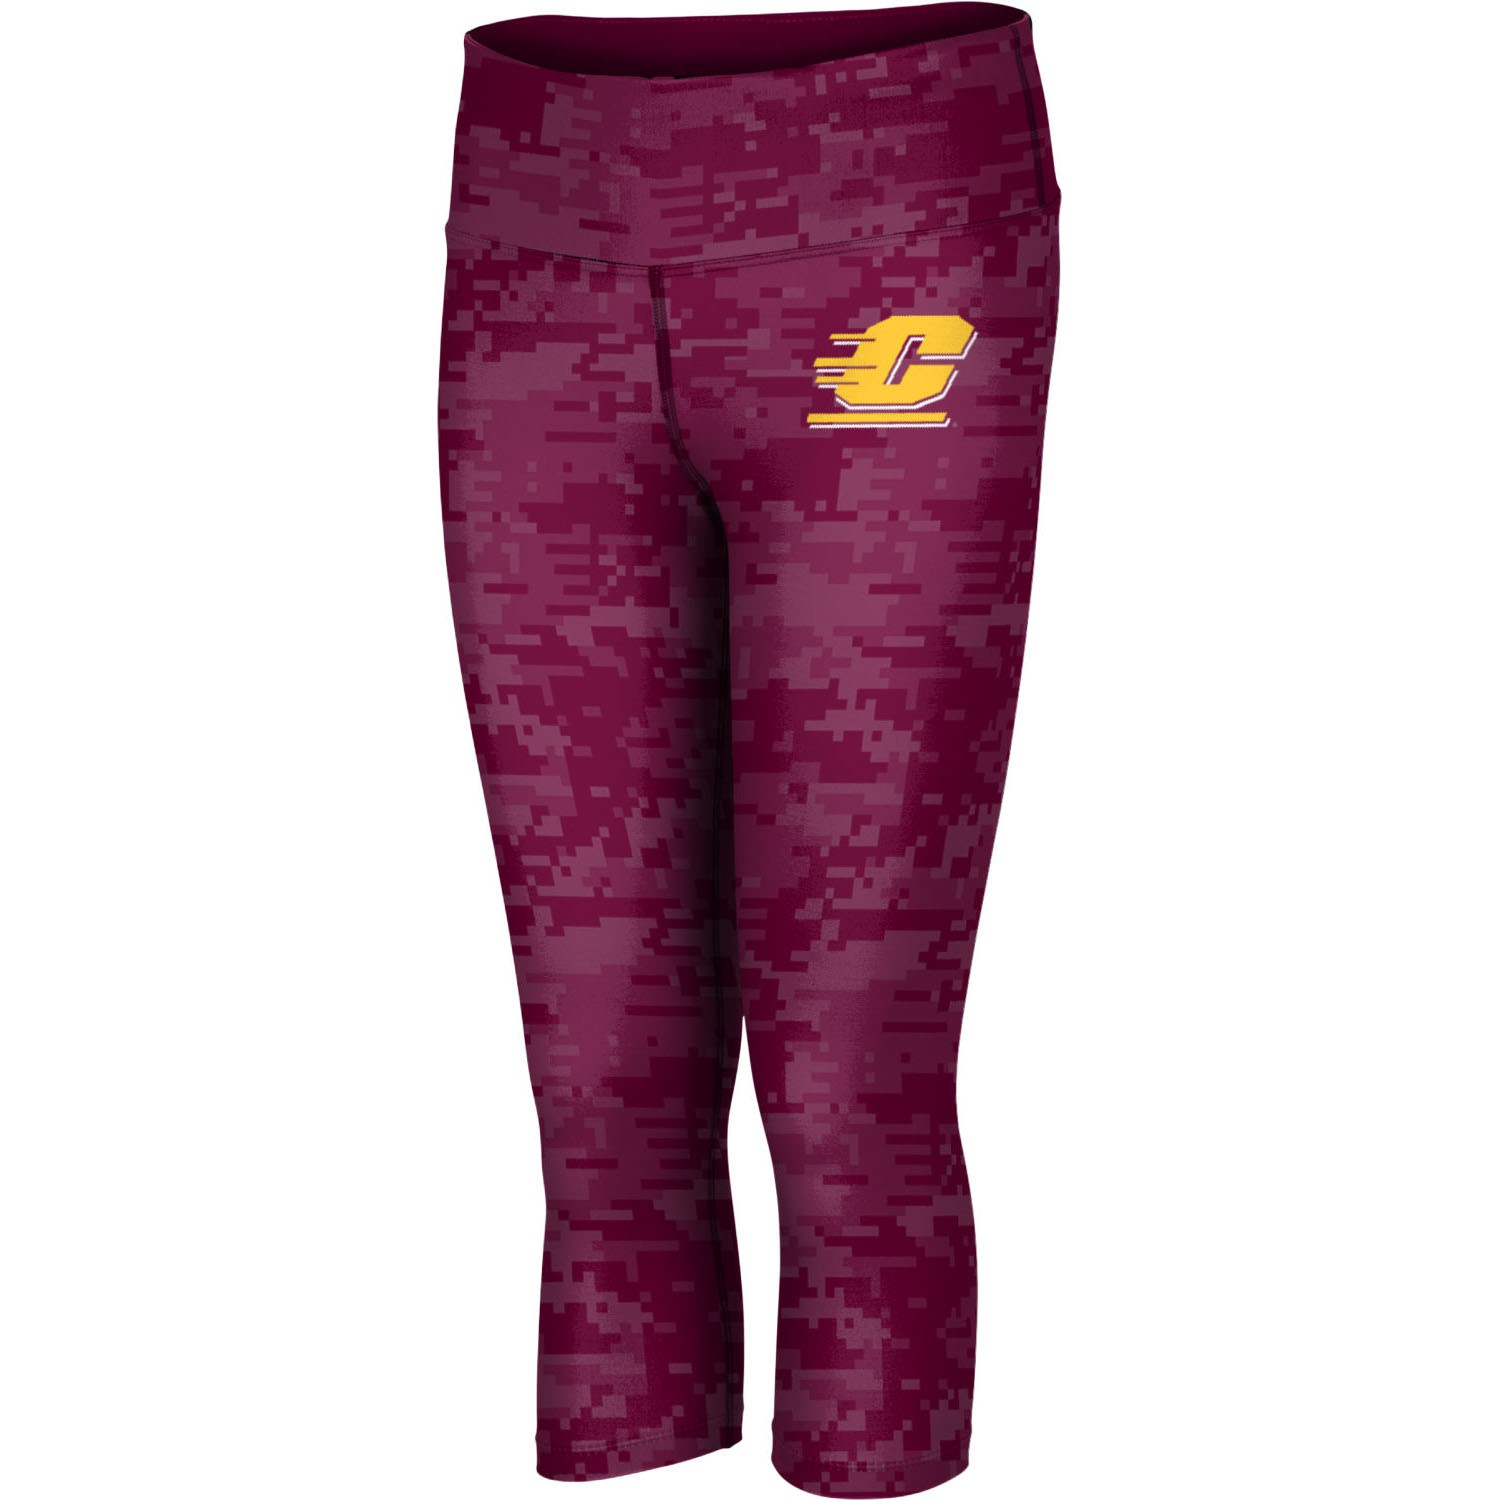 ProSphere Women's Central Michigan University Digital Capri Length Tight